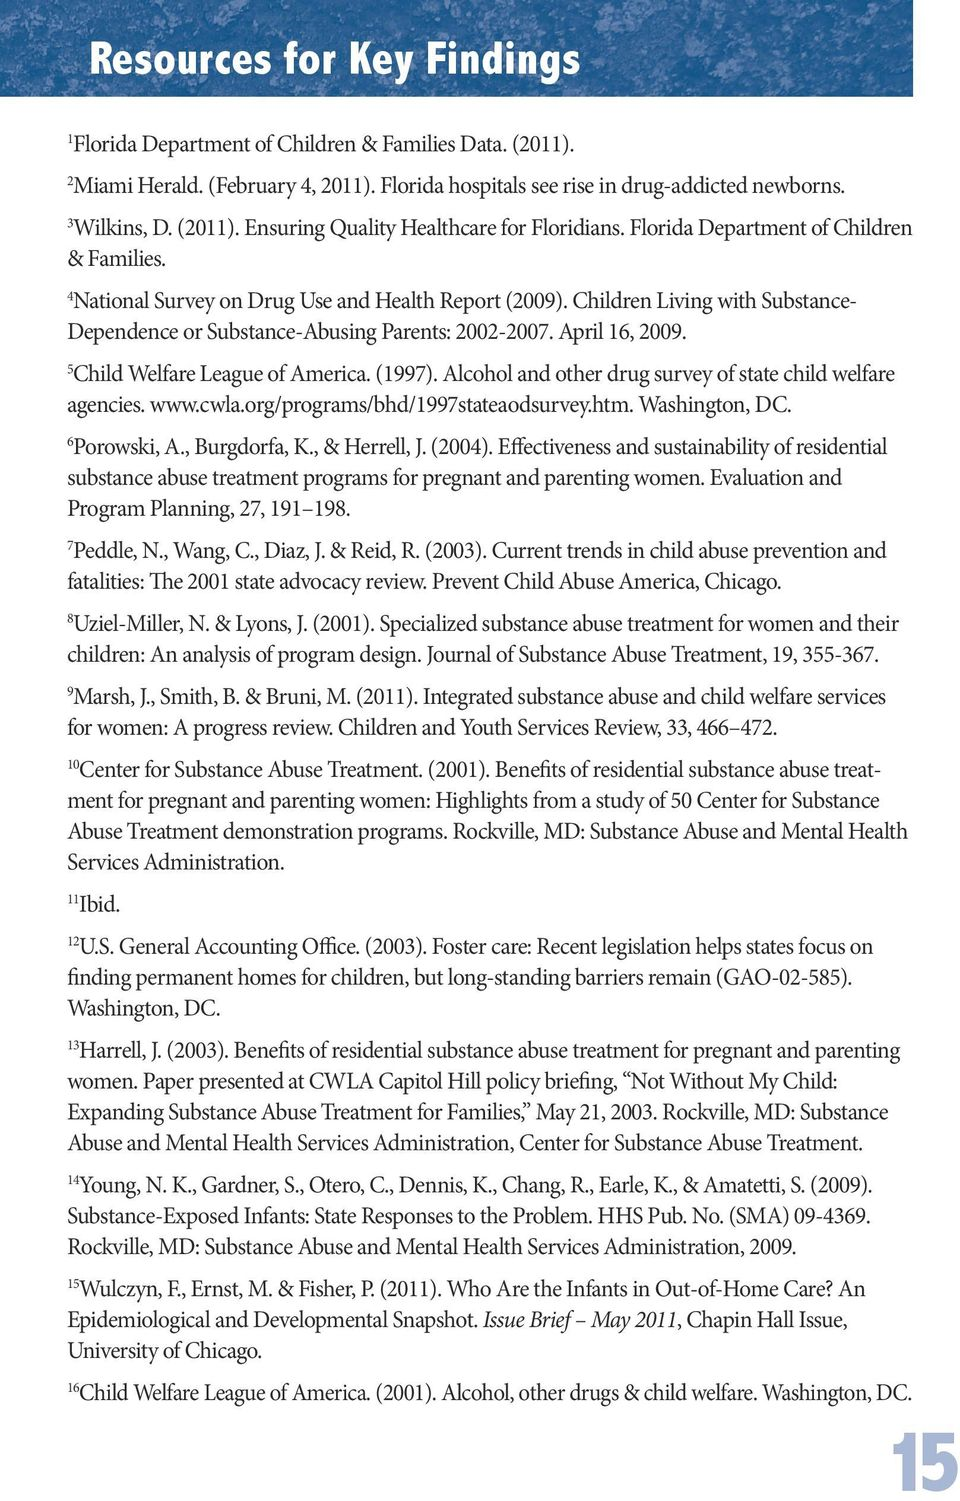 5 Child Welfare League of America. (1997). Alcohol and other drug survey of state child welfare agencies. www.cwla.org/programs/bhd/1997stateaodsurvey.htm. Washington, DC. 6 Porowski, A.